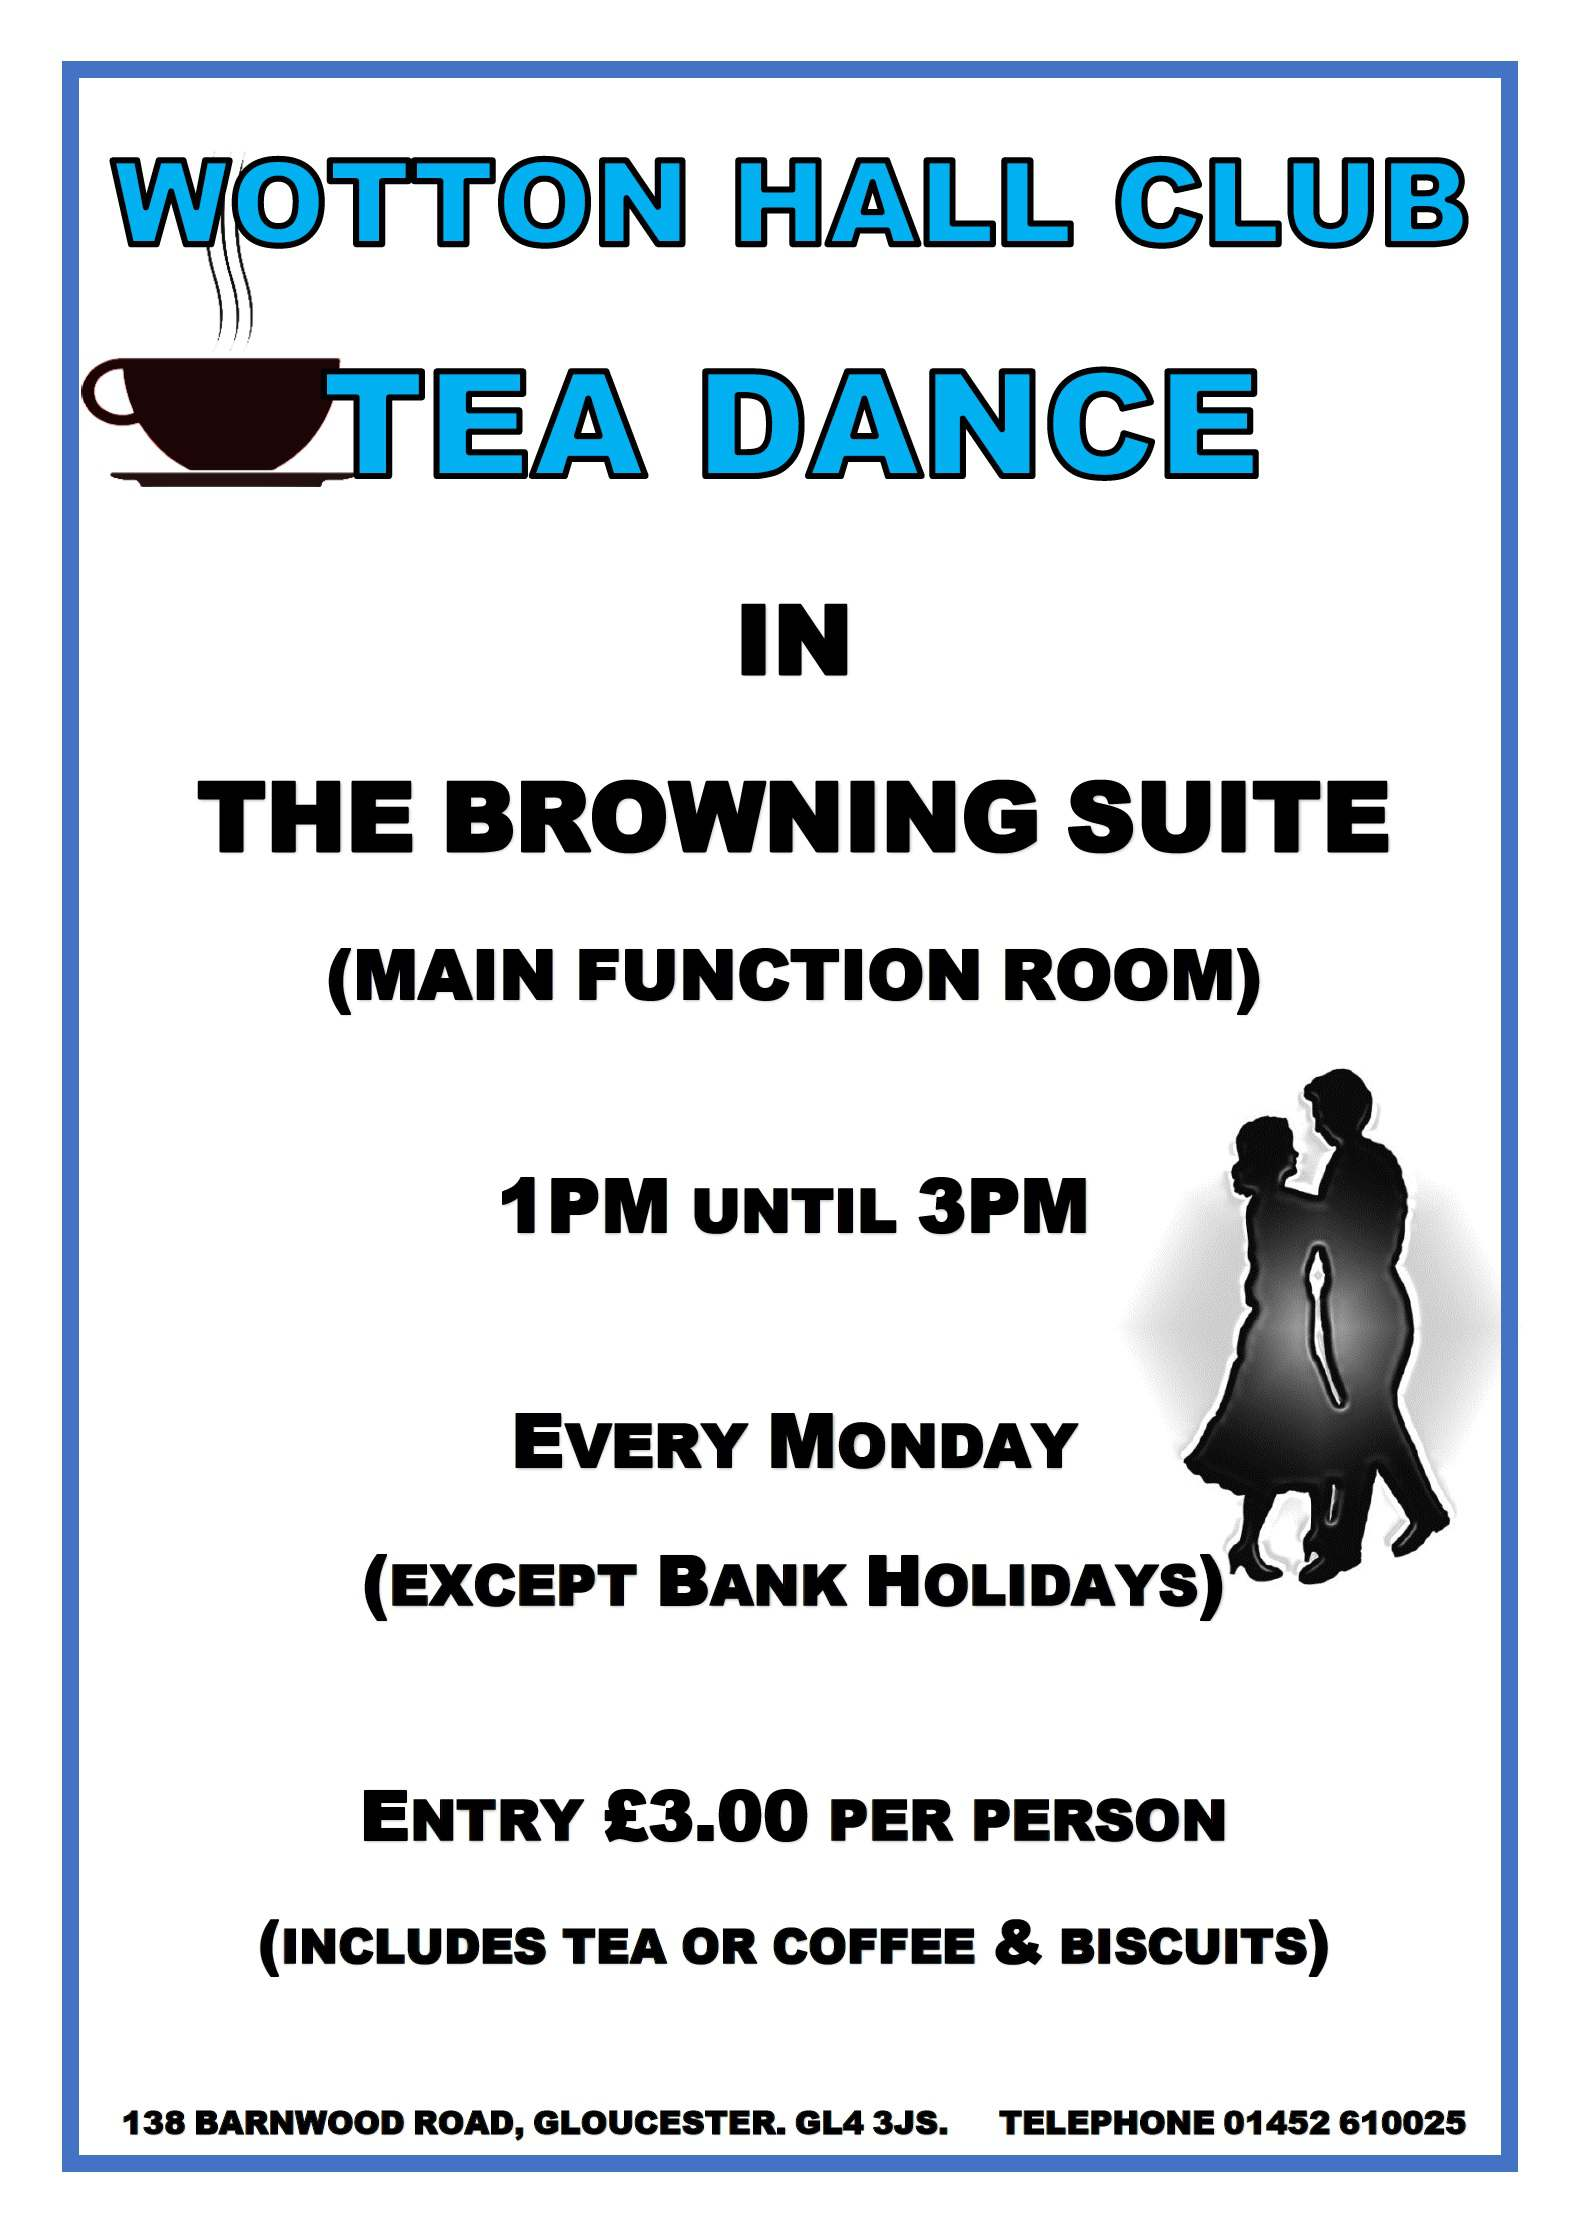 TEA DANCE MONDAY